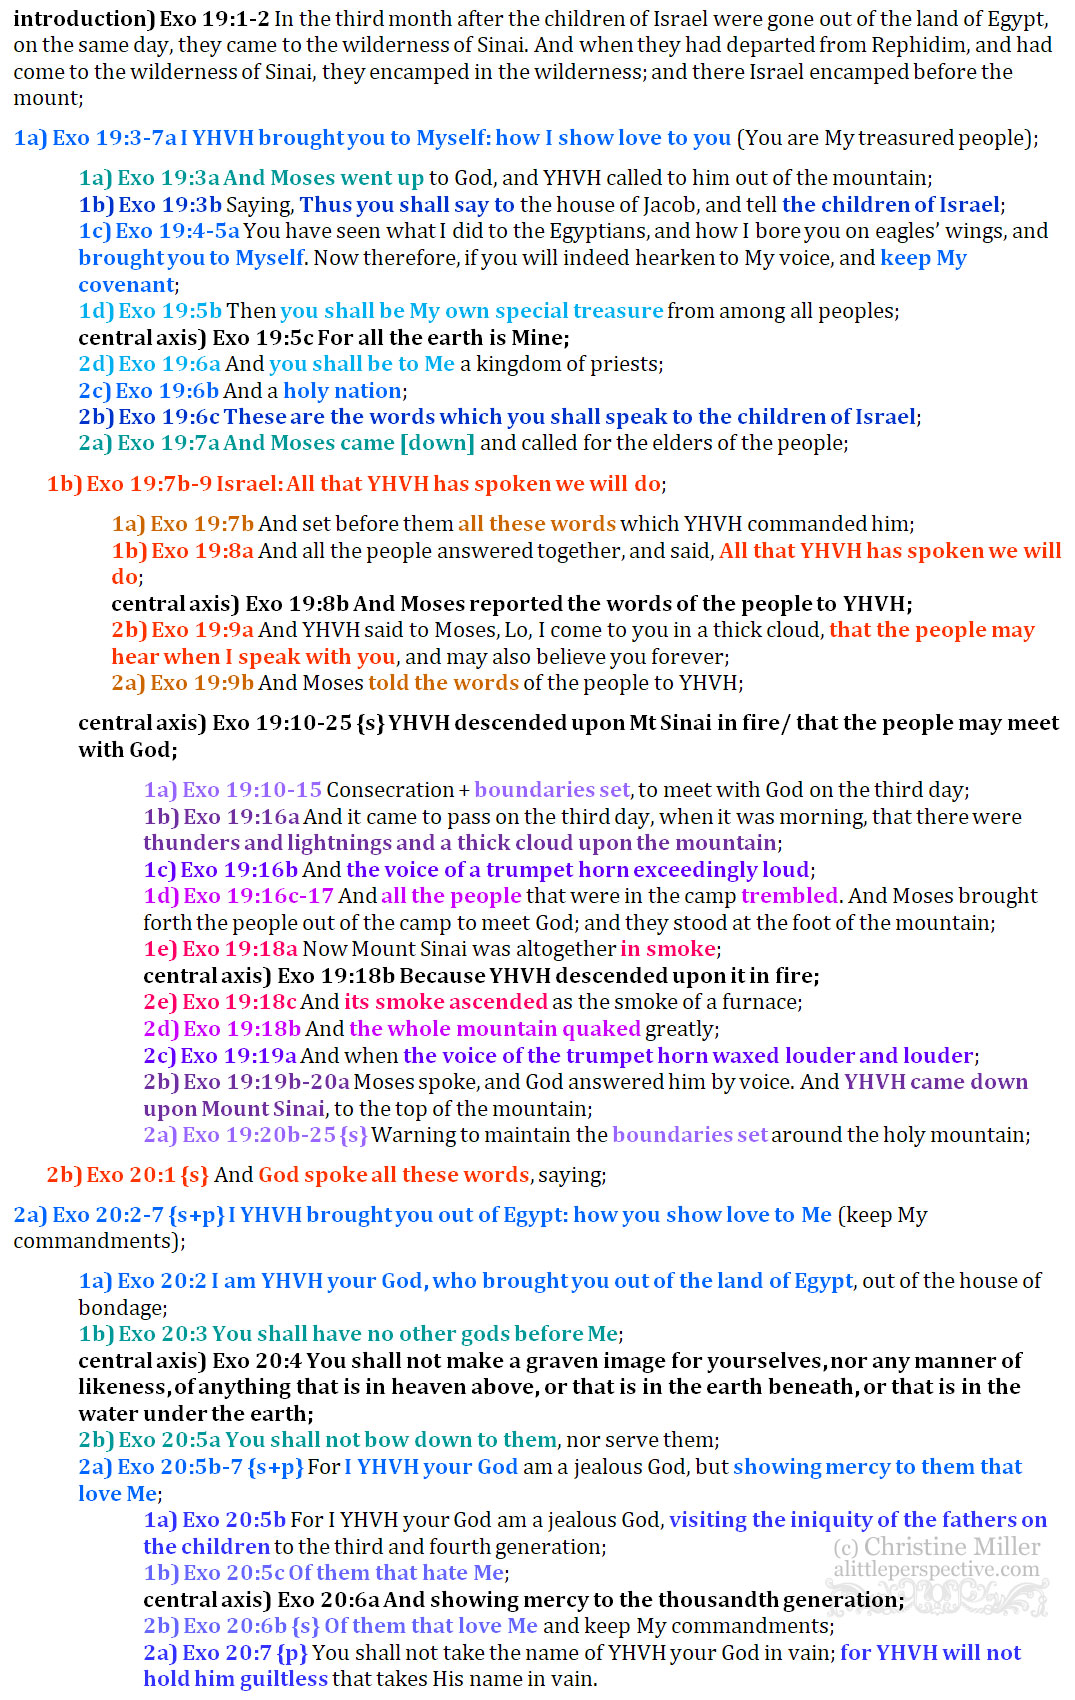 Exo 19:1-20:7 chiasm   christine's bible study at alittleperspective.com